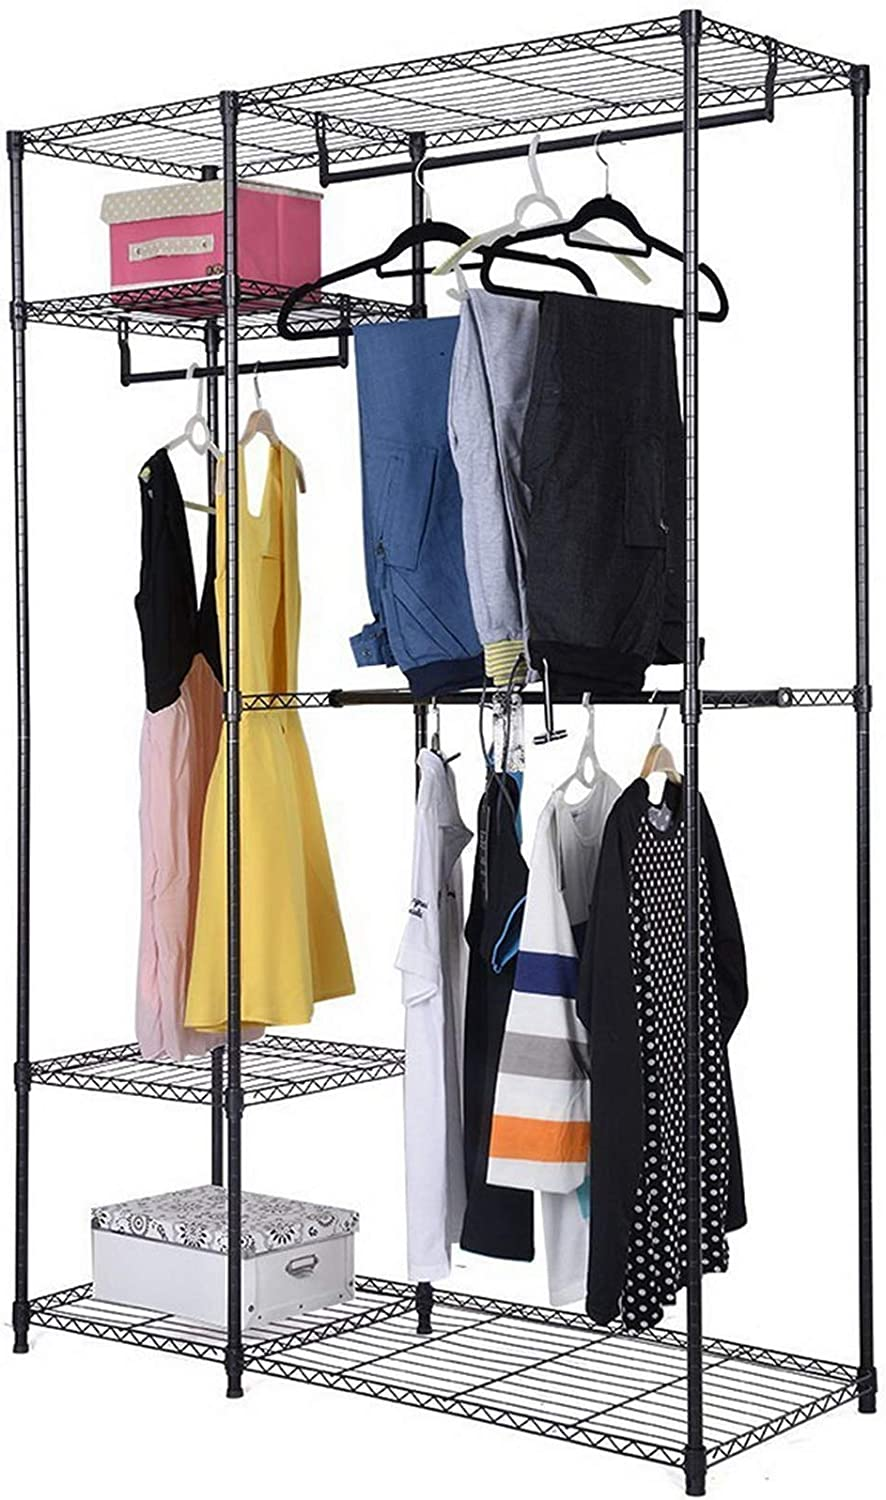 BRLUCKY Direct sale of manufacturer Furniture 4 Tiers Clothing Fancy Rack Clot Black Storage Spring new work